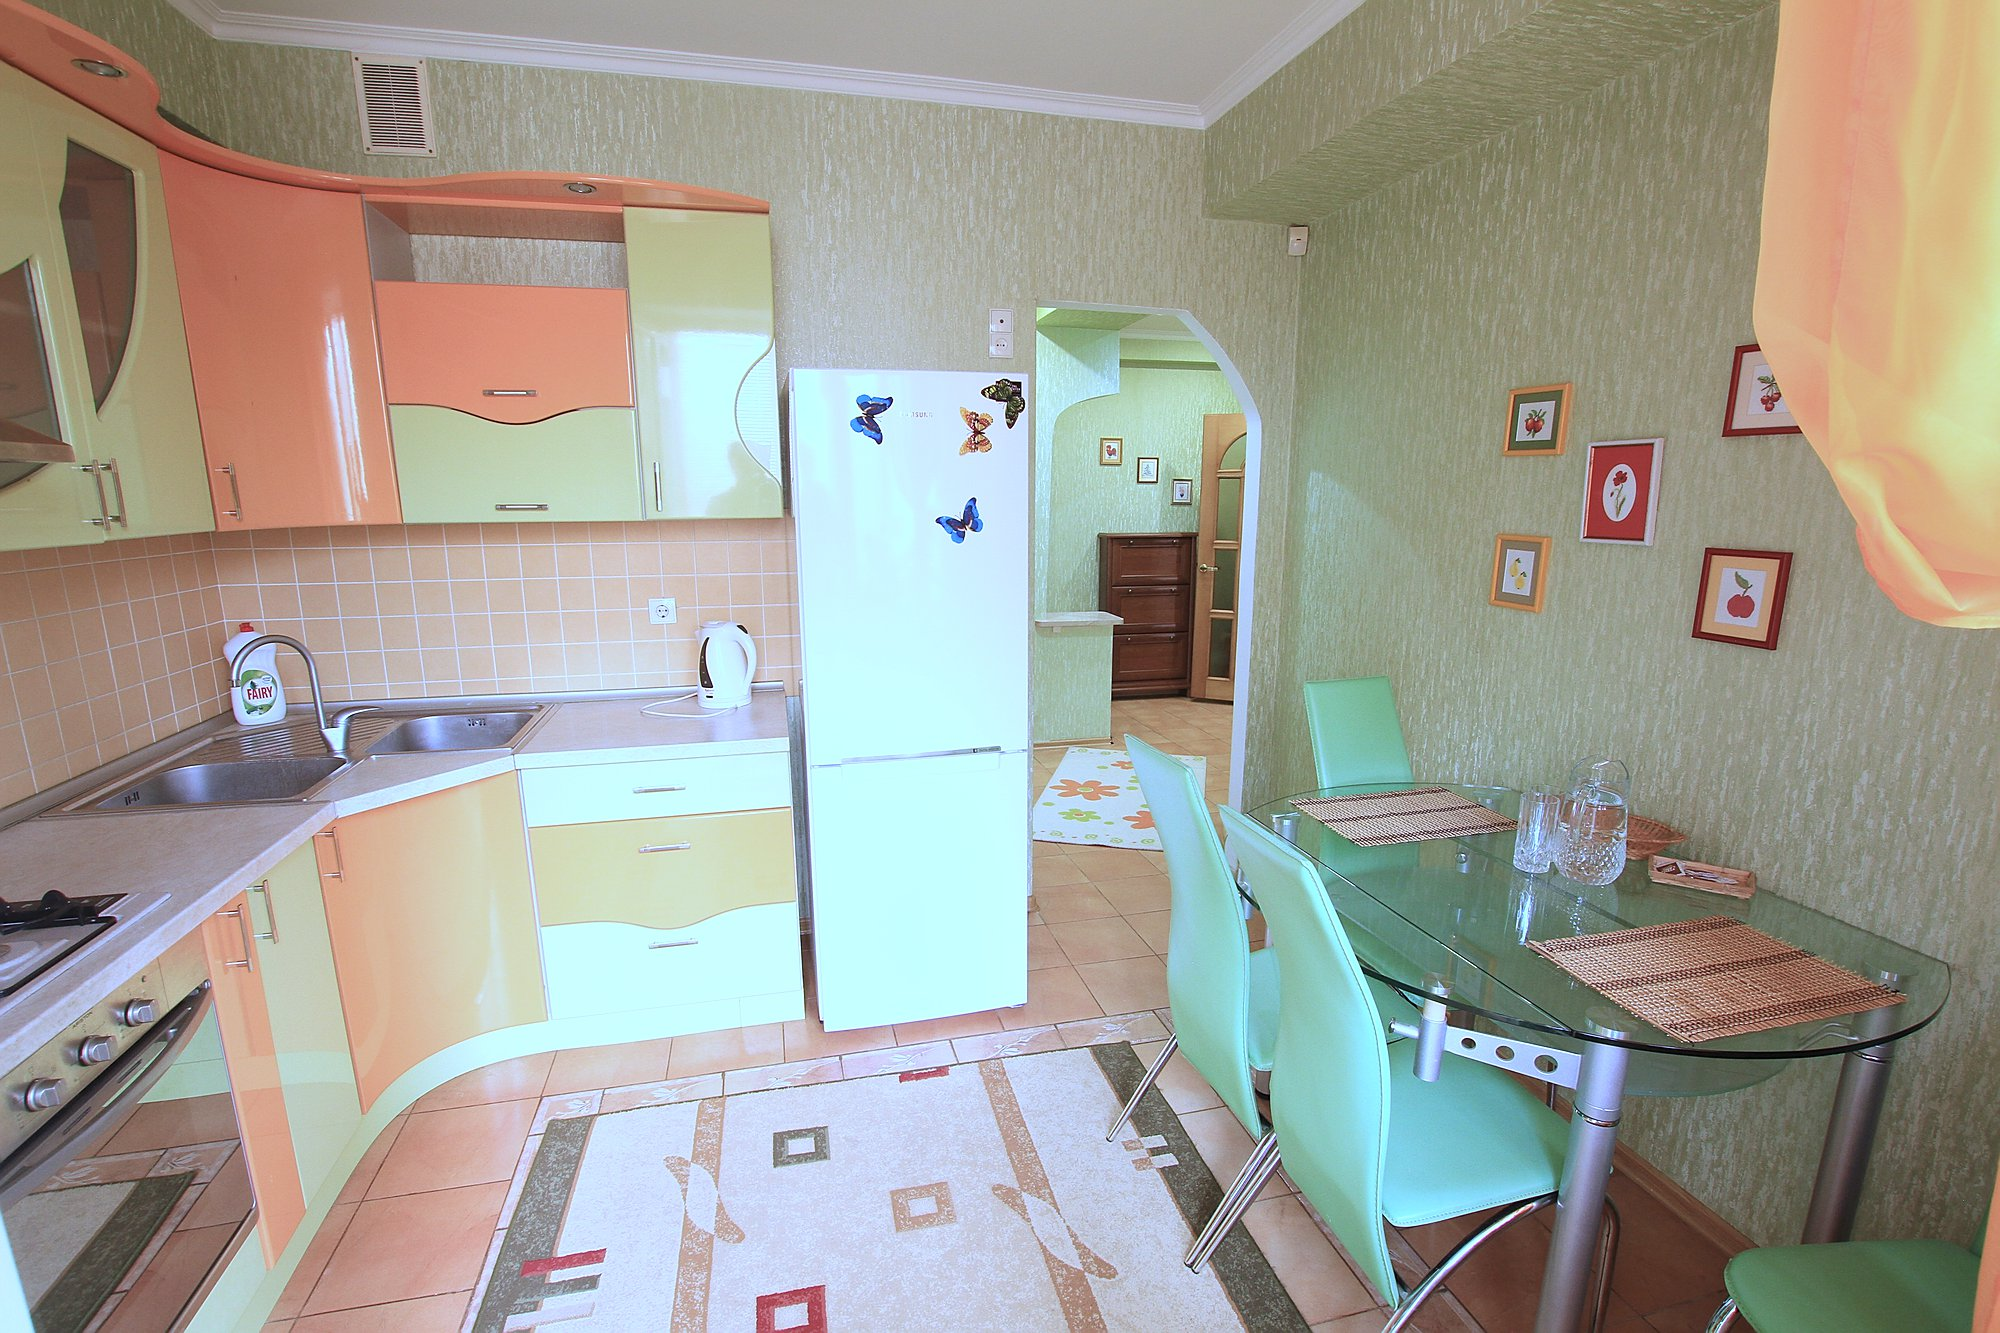 Anestiade Studio is a 1 room apartment for rent in Chisinau, Moldova